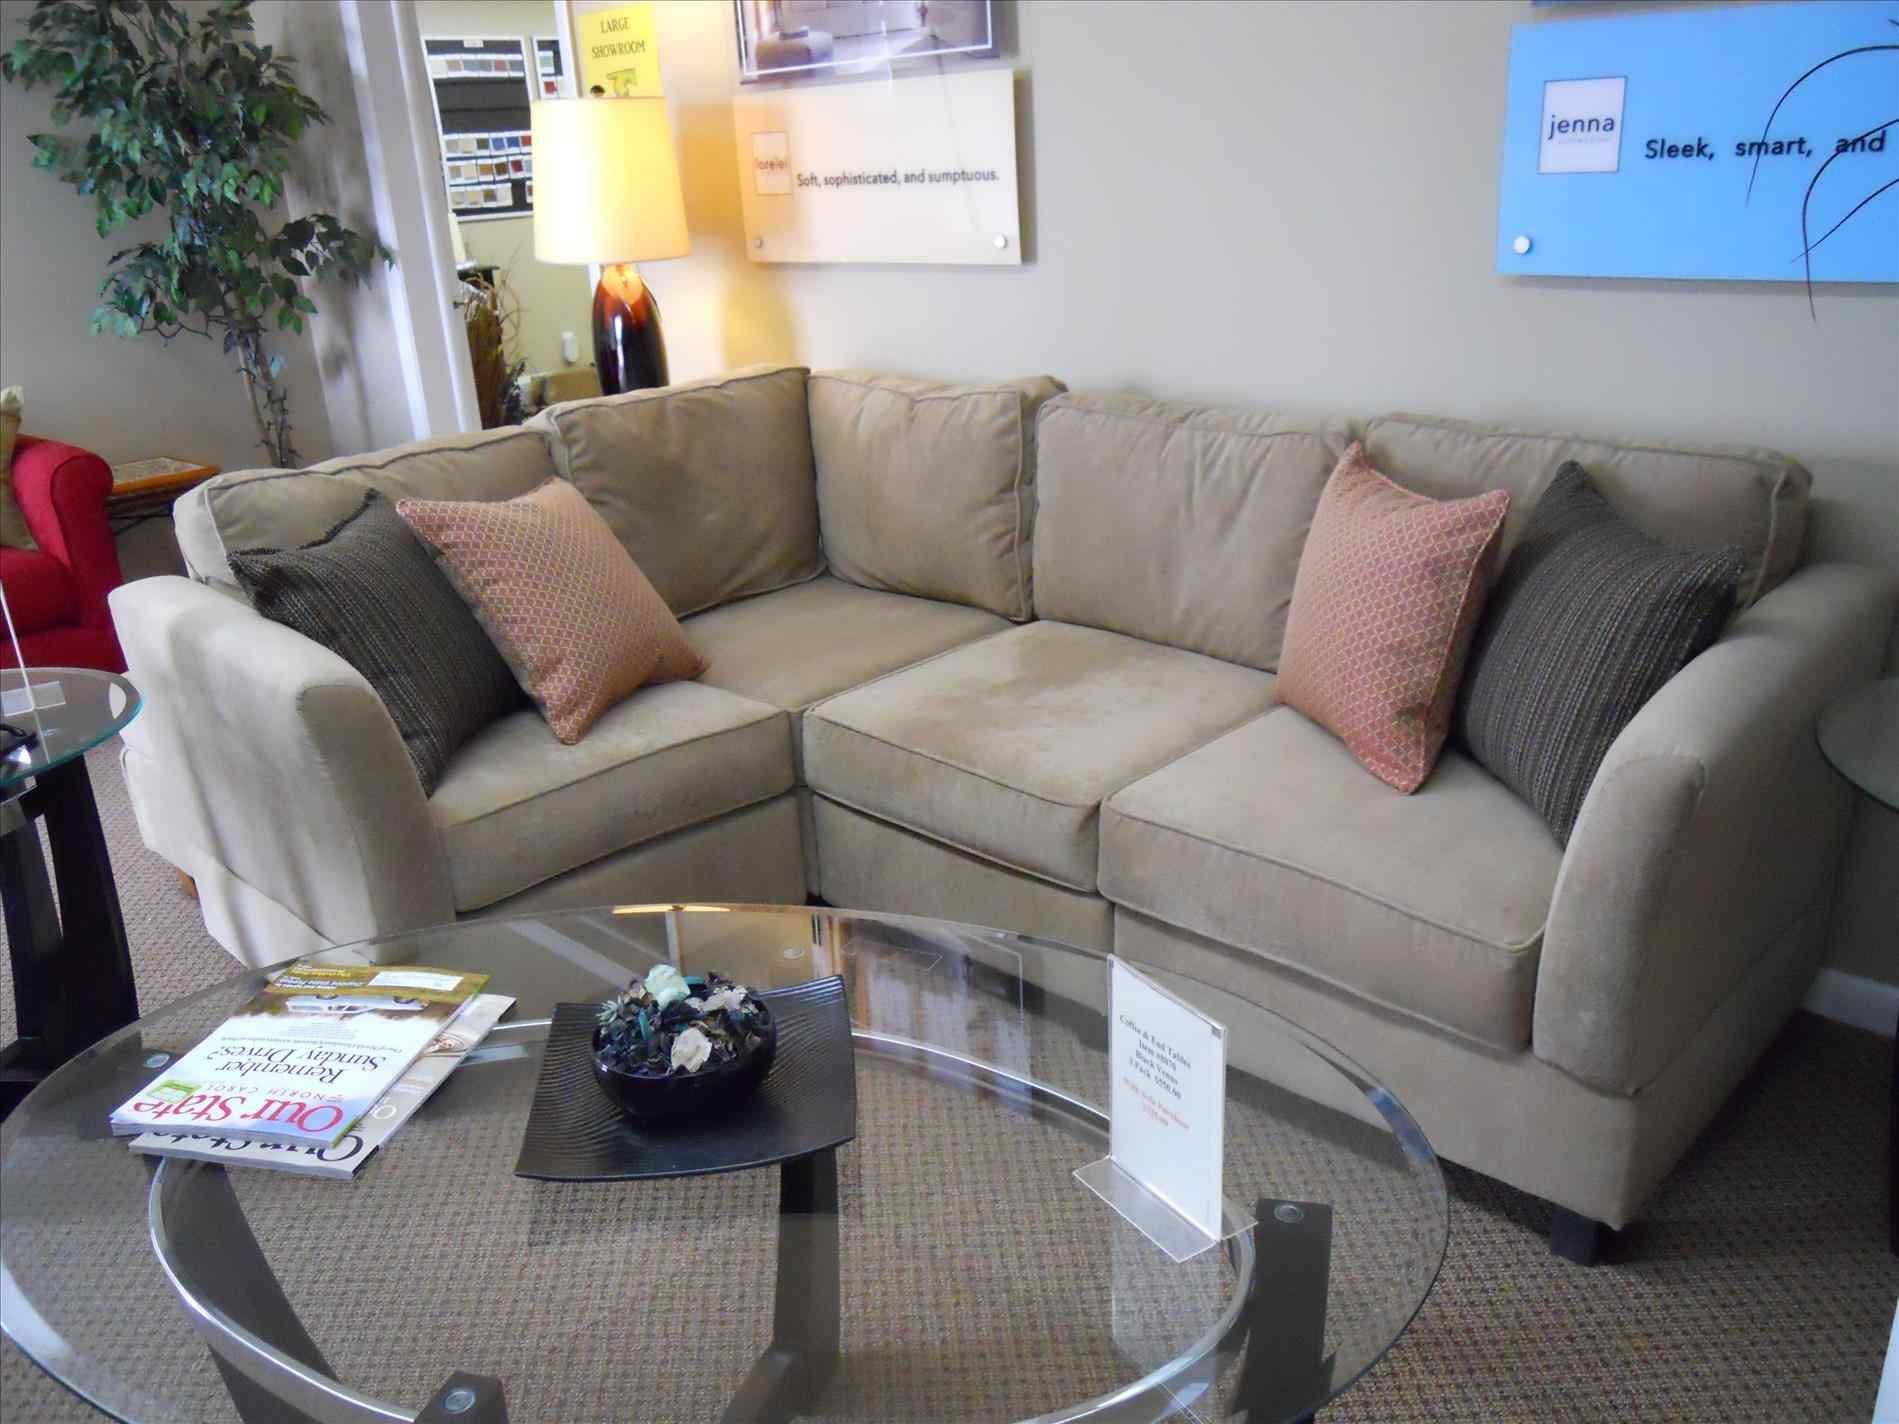 Apartment Size Sofa Sectionals Then Get A Little Custom Sectional Couch If Your Room Is Too Even For Sect